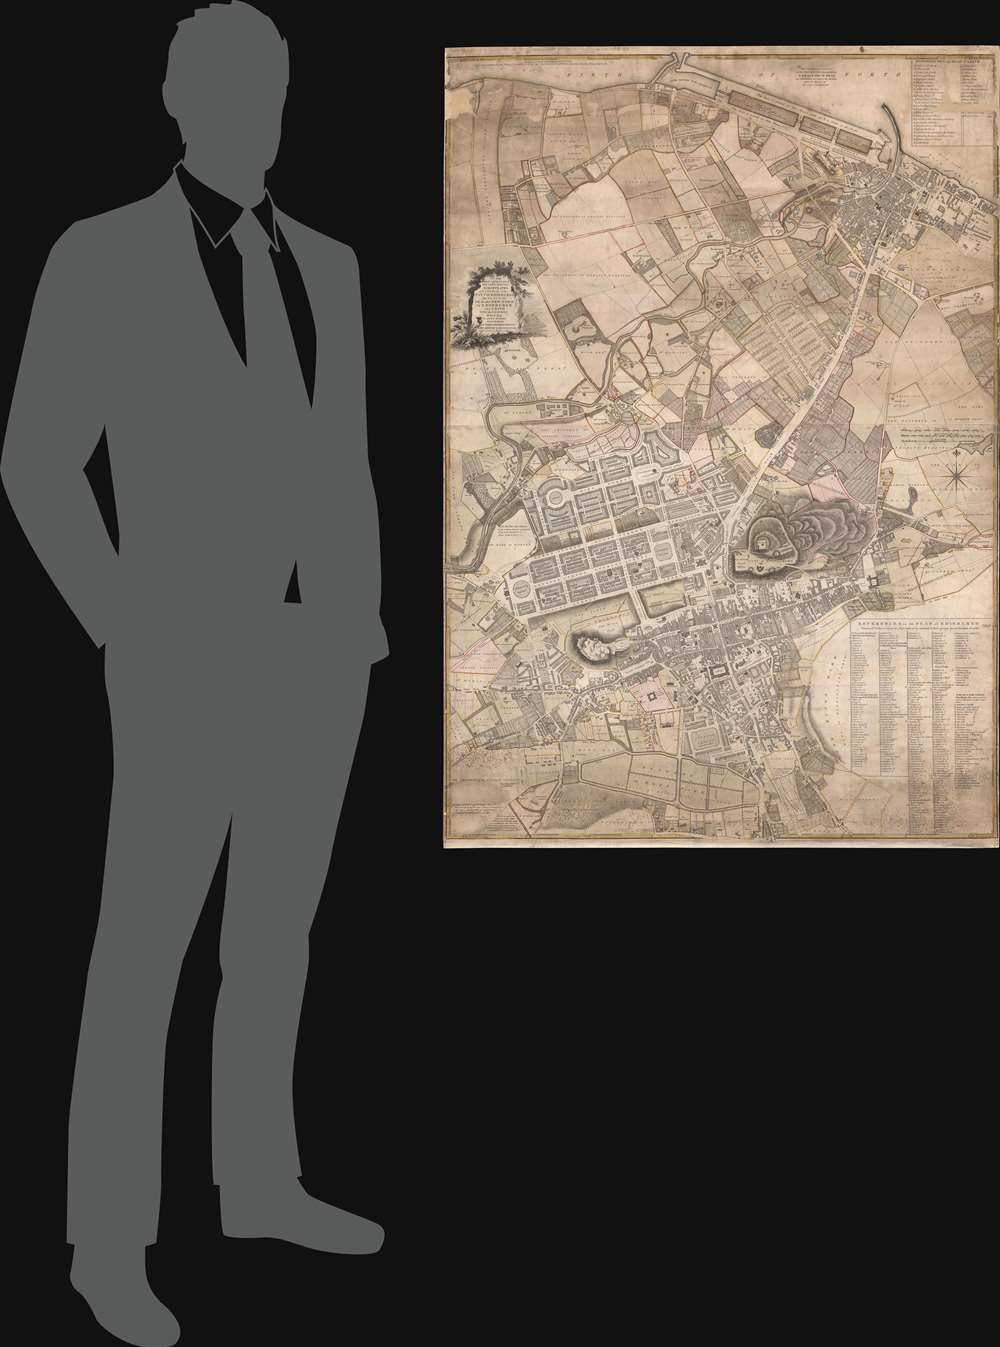 To the Right Honourable The Lord Provost Magistrates. and Council of the City of Edinburgh this Plan of the Old and new Town of Edinburgh and Leith With the Proposed Docks is Most Humbly Inscribed by Their Obedient Servant John Ainslie Land-Surveyor. - Alternate View 1